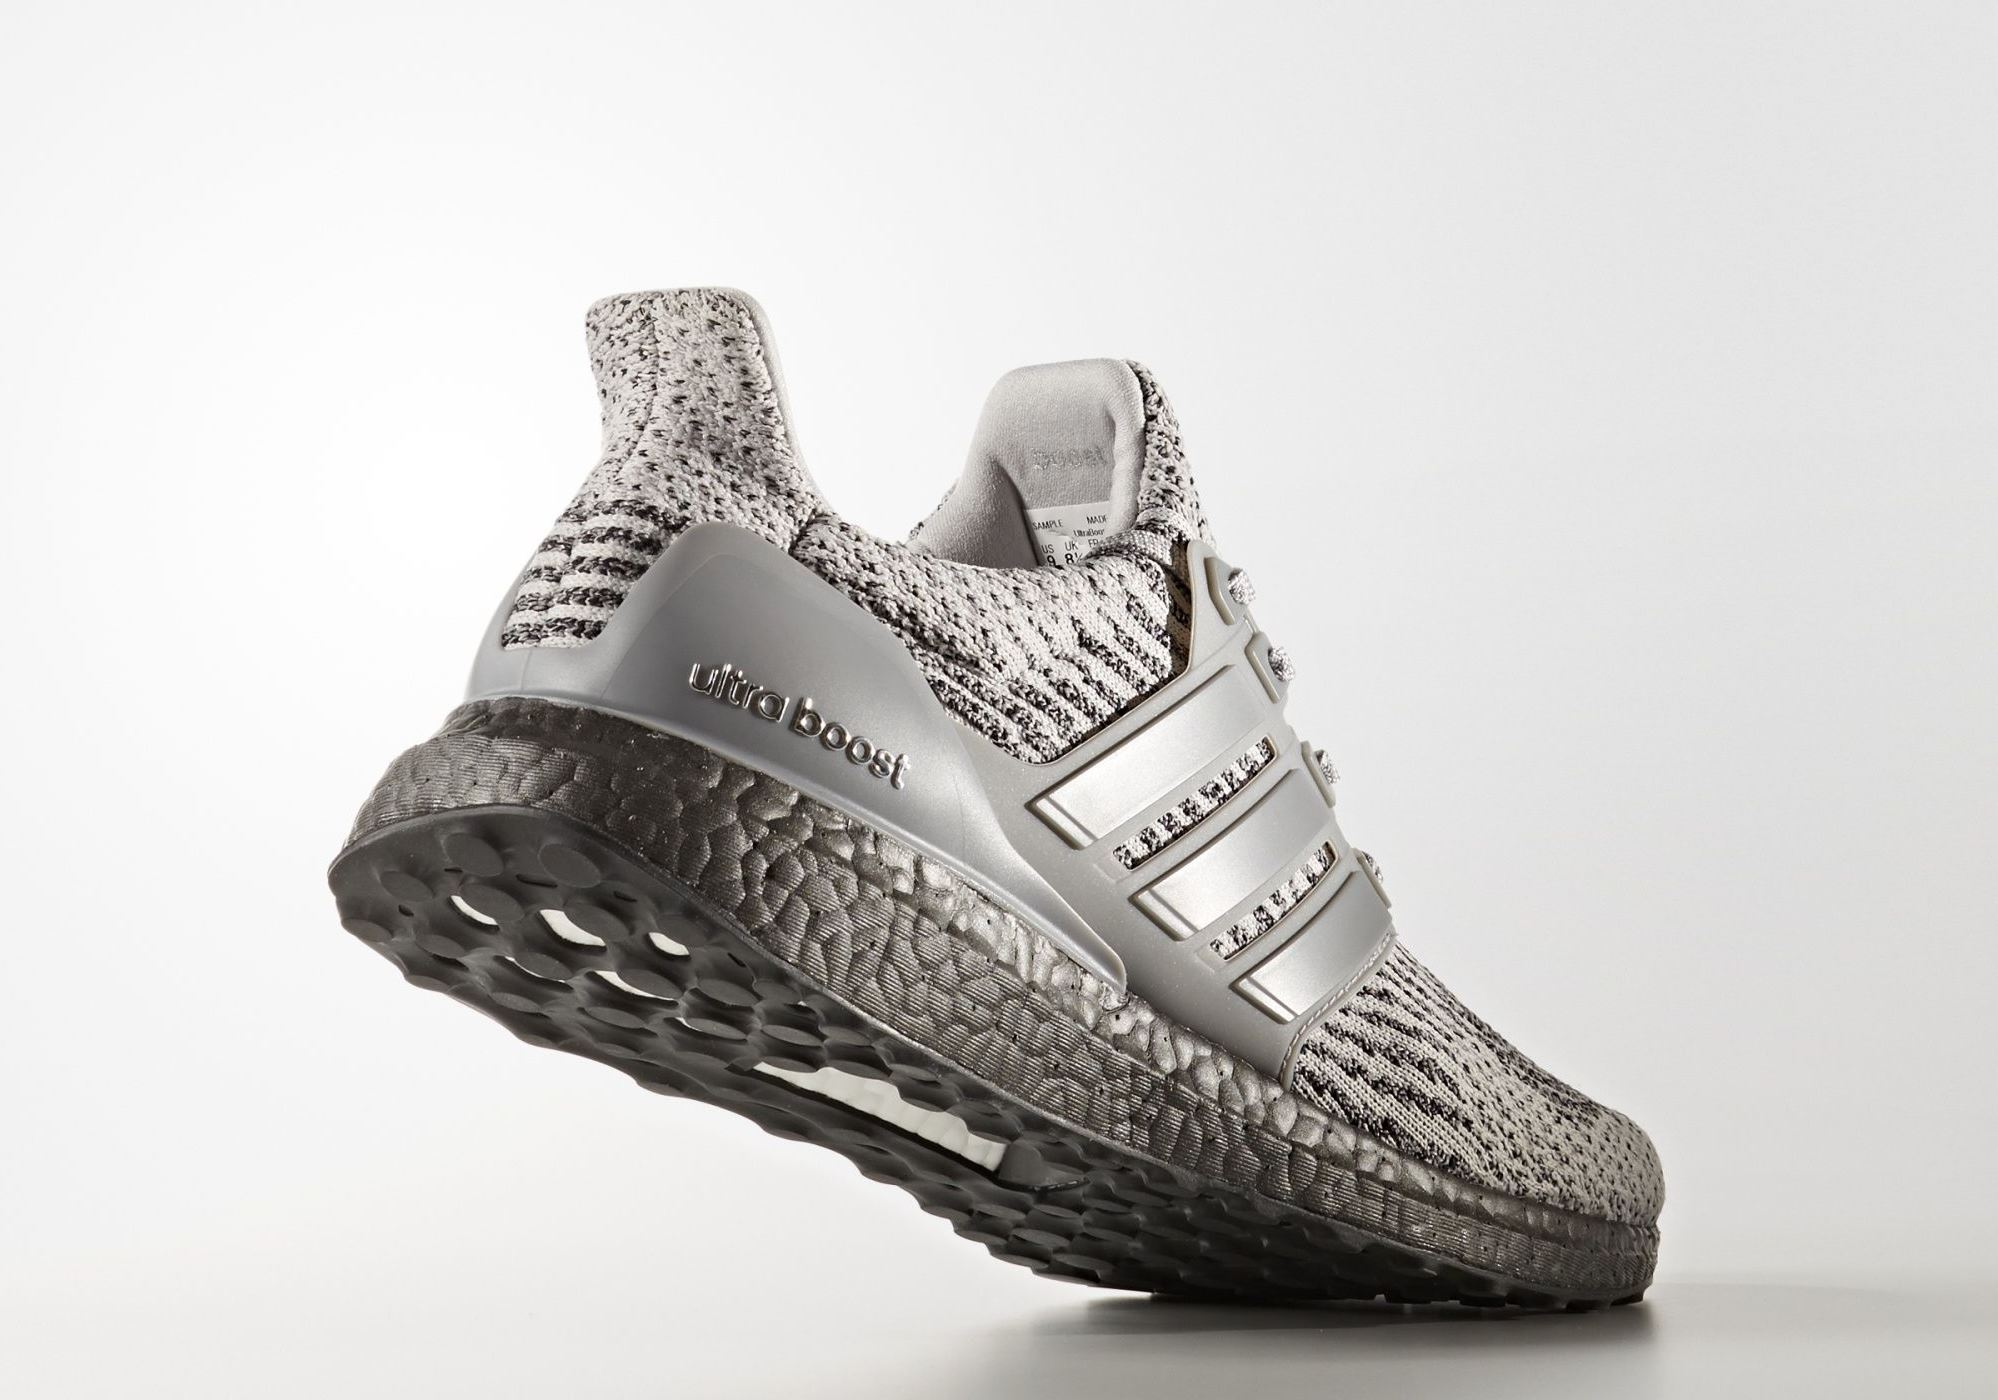 New adidas UltraBoost Colorways to